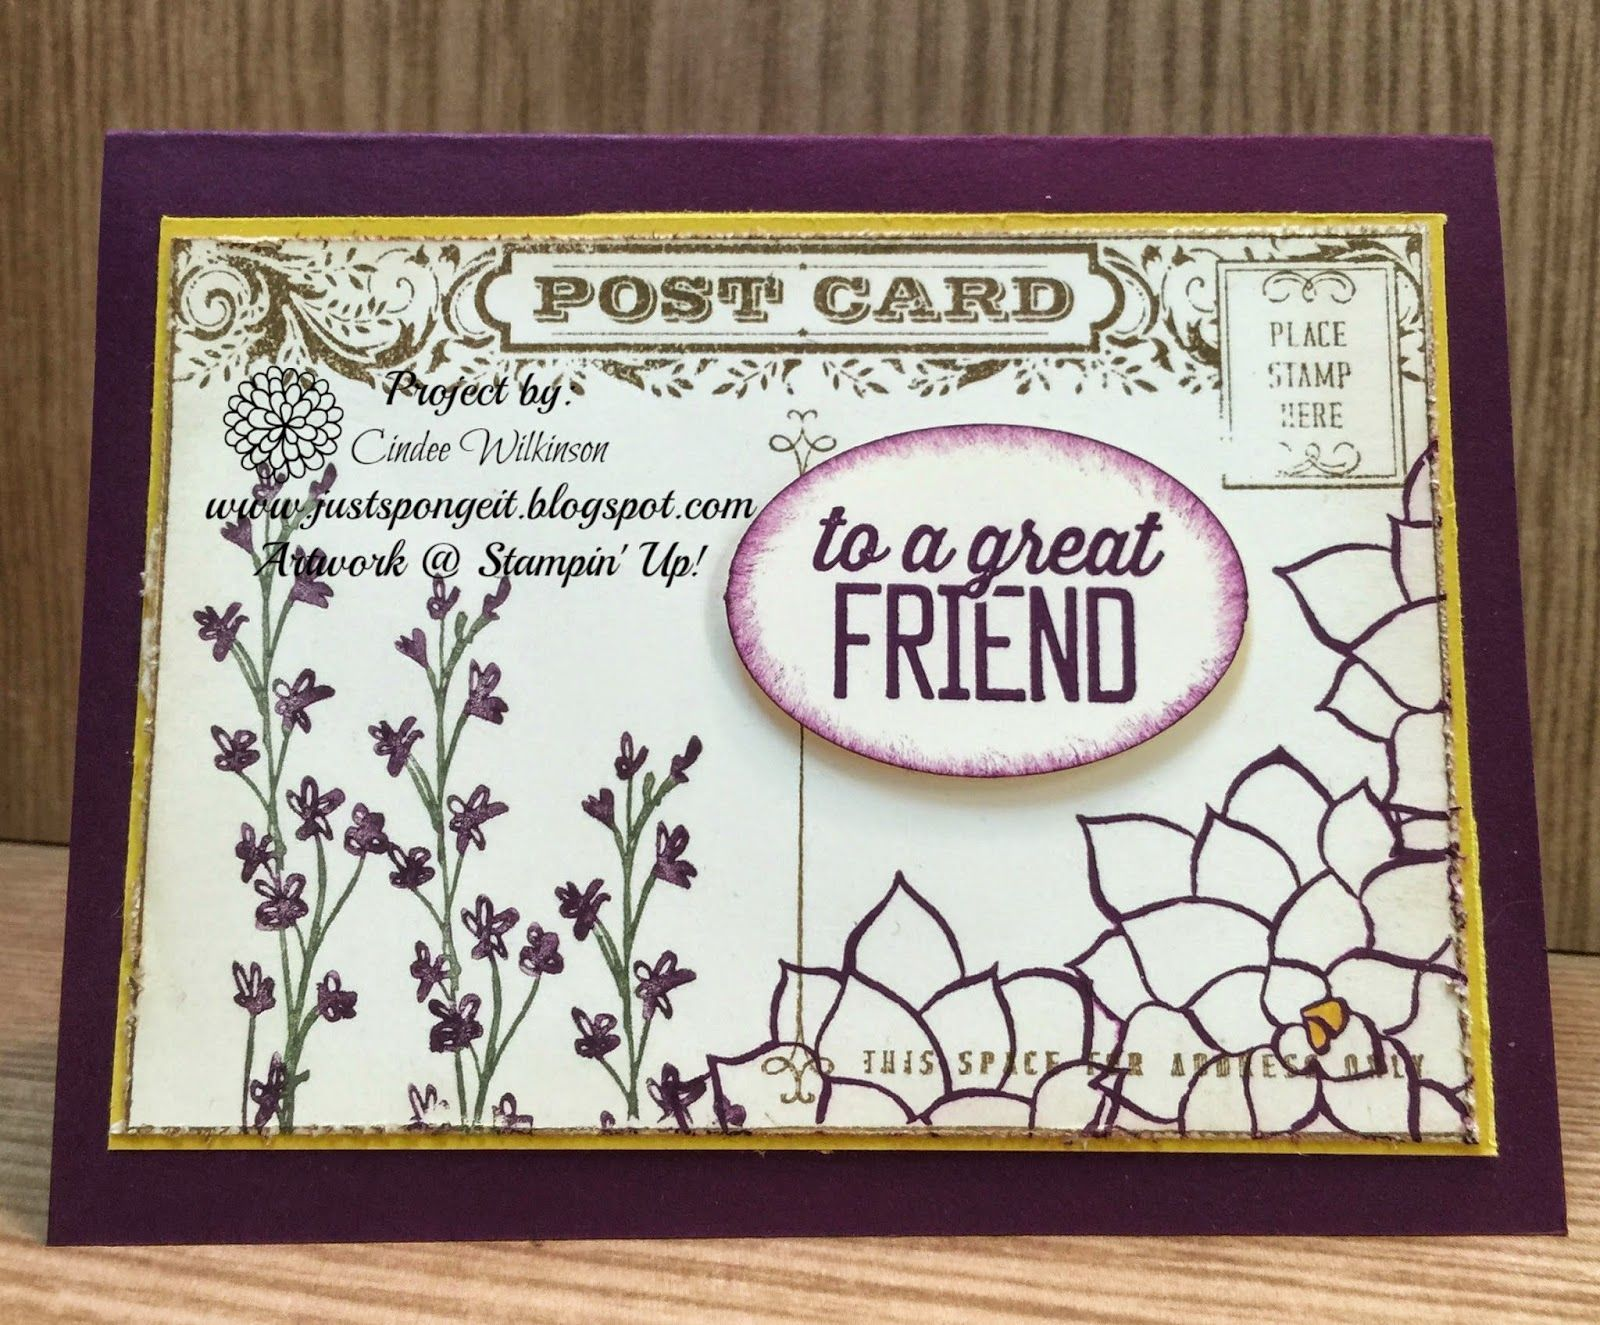 Just Sponge It: Nature's Perfection, To a Great Friend, Nature's Perfection & Simply Wonderful Stamps (SAB), Post Card stamp,2014-2016 In color Stampin' Write Markers, Stampin' Distress Tool, DIY, Stampin' Up!, Friendship cards